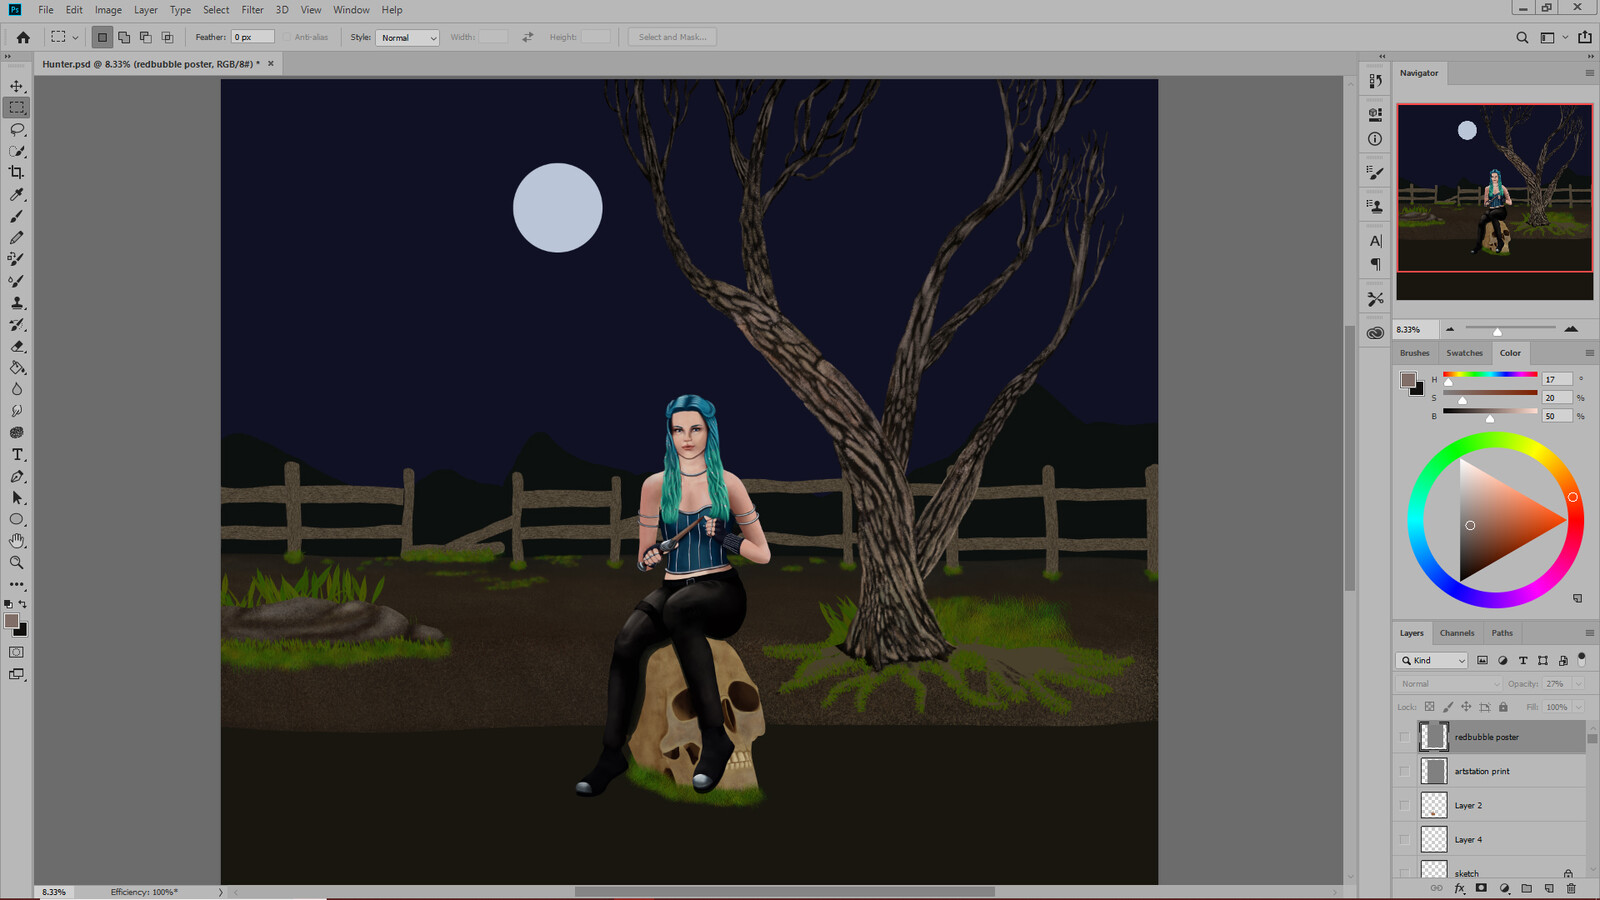 Working on the background now. I tried out several ideas including more patches of grass.